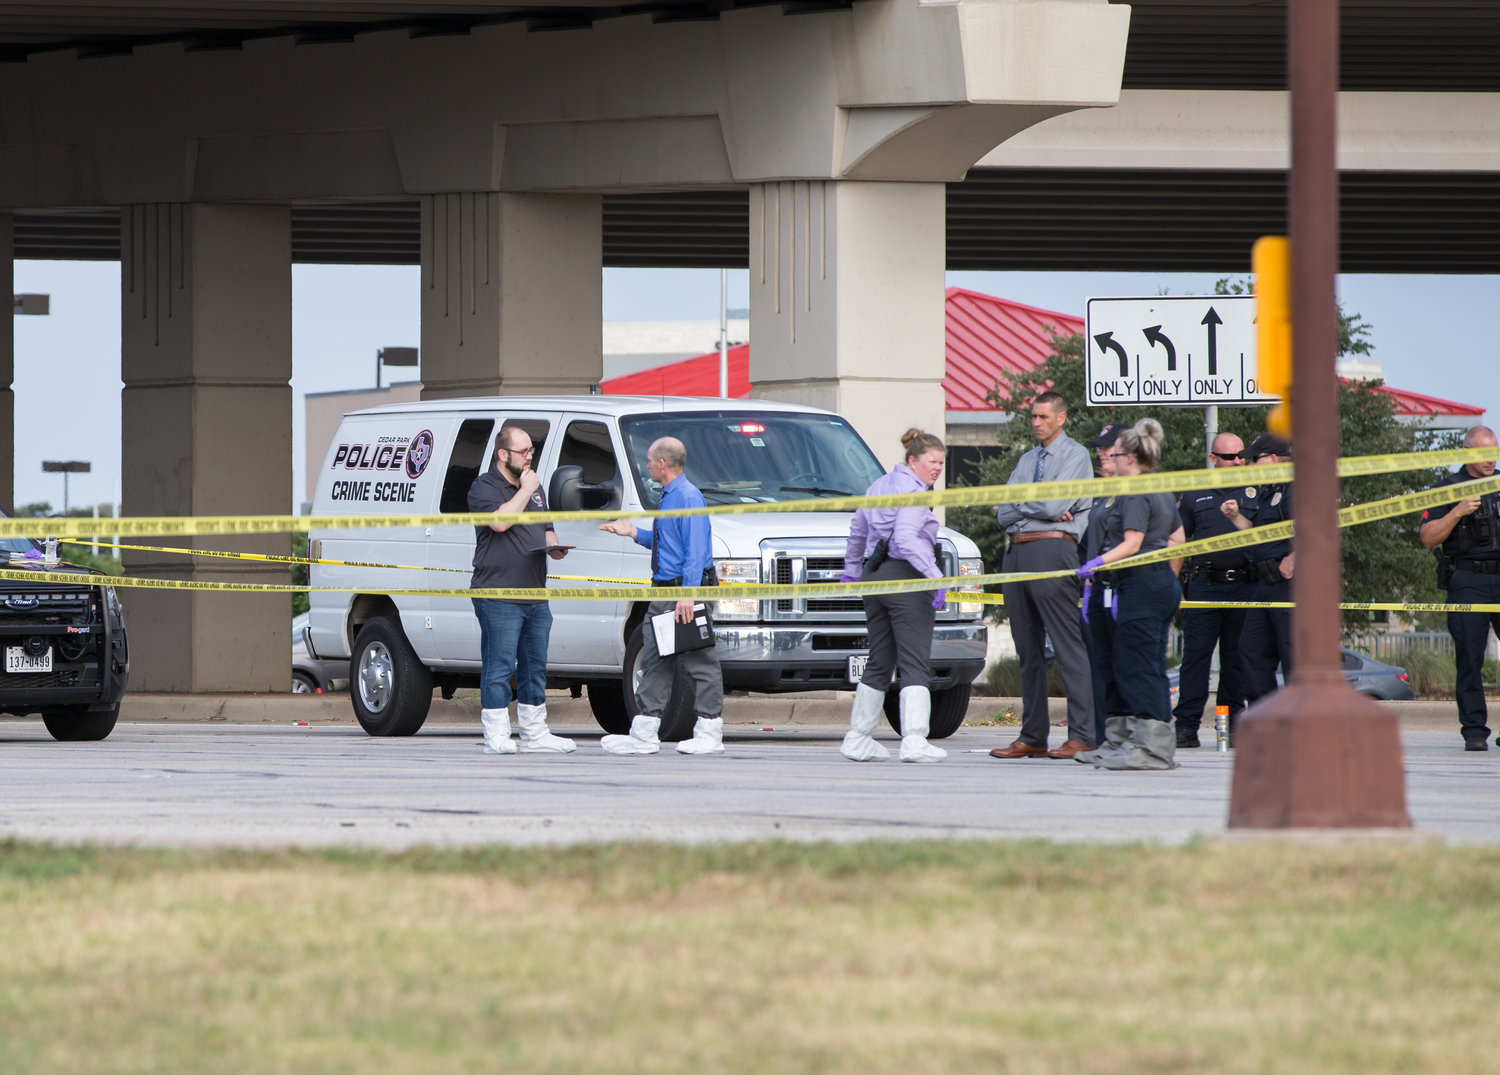 The scene where police say someone shot  into a vehicle around 6 a.m. Saturday, August 3, 2019, killing one person and seriously injuring another, at the intersection of 183A Toll and East Whitestone Boulevard in Cedar Park.